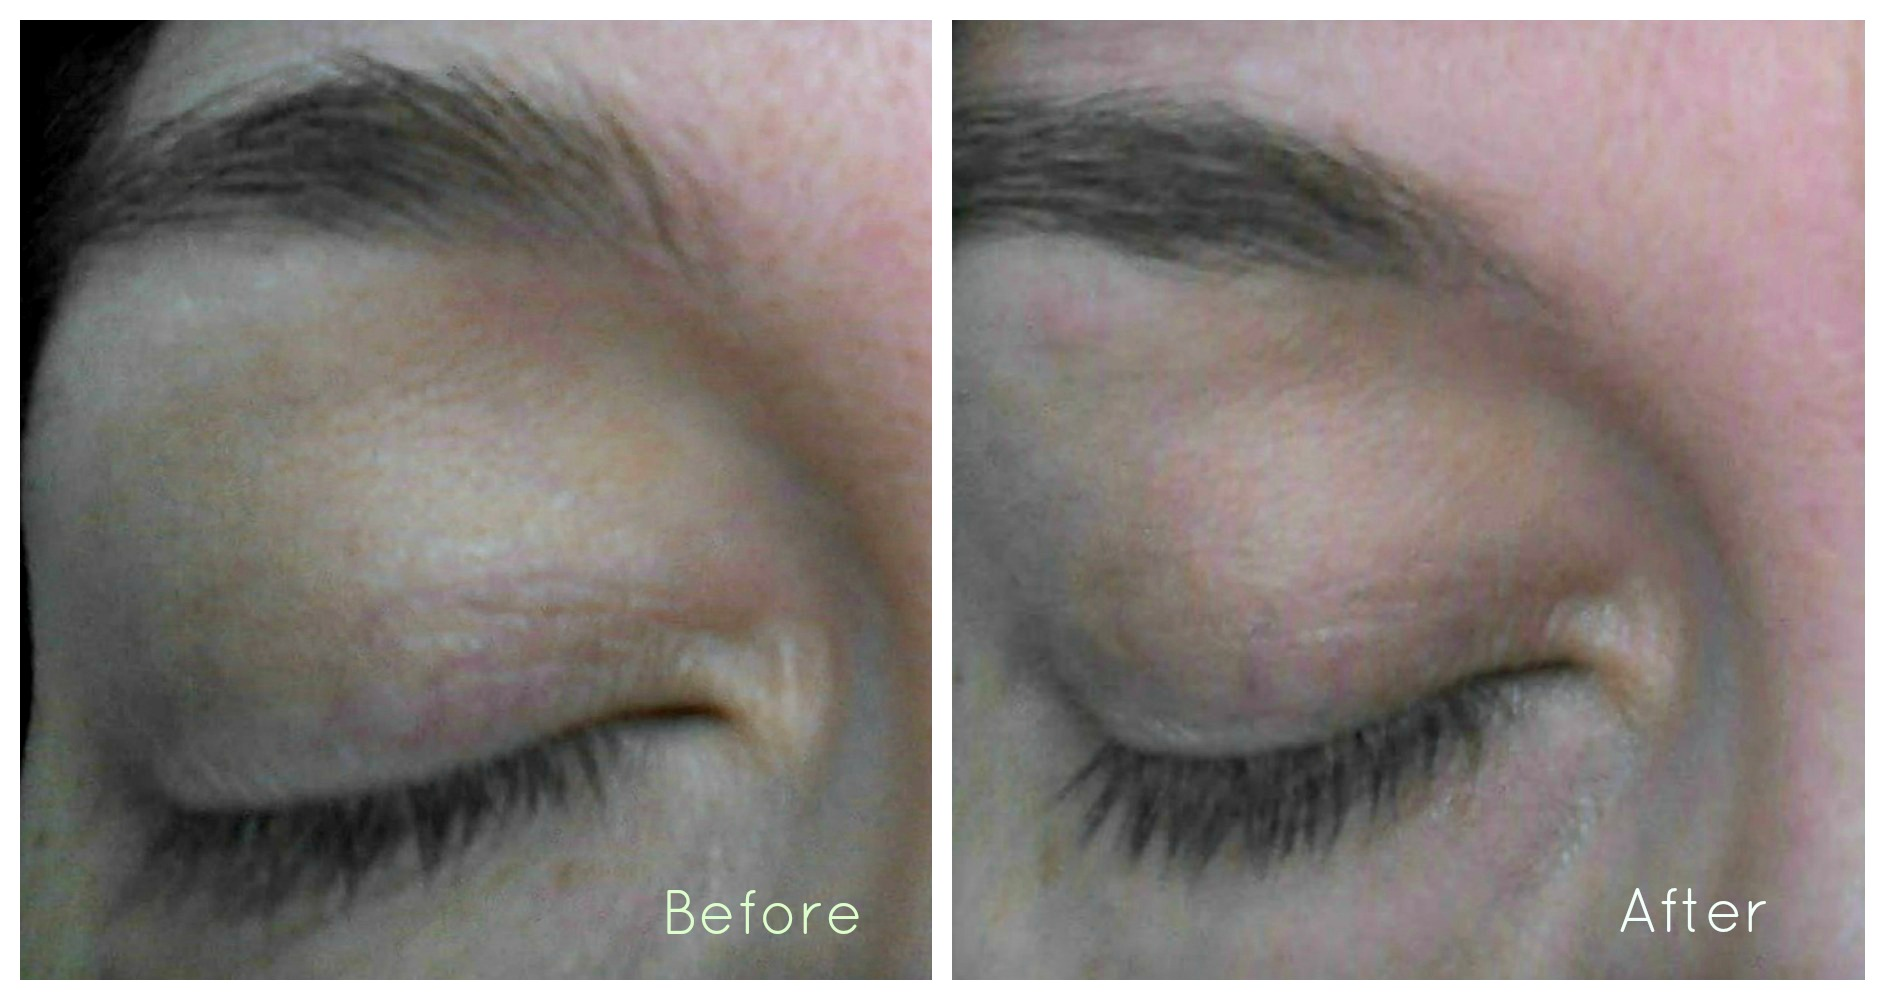 8879cfe3a47 I have no decent before images of my brows so it's hard to make a  comparison shot for you. Honestly I was more excited to try the lash serum  and kind of ...